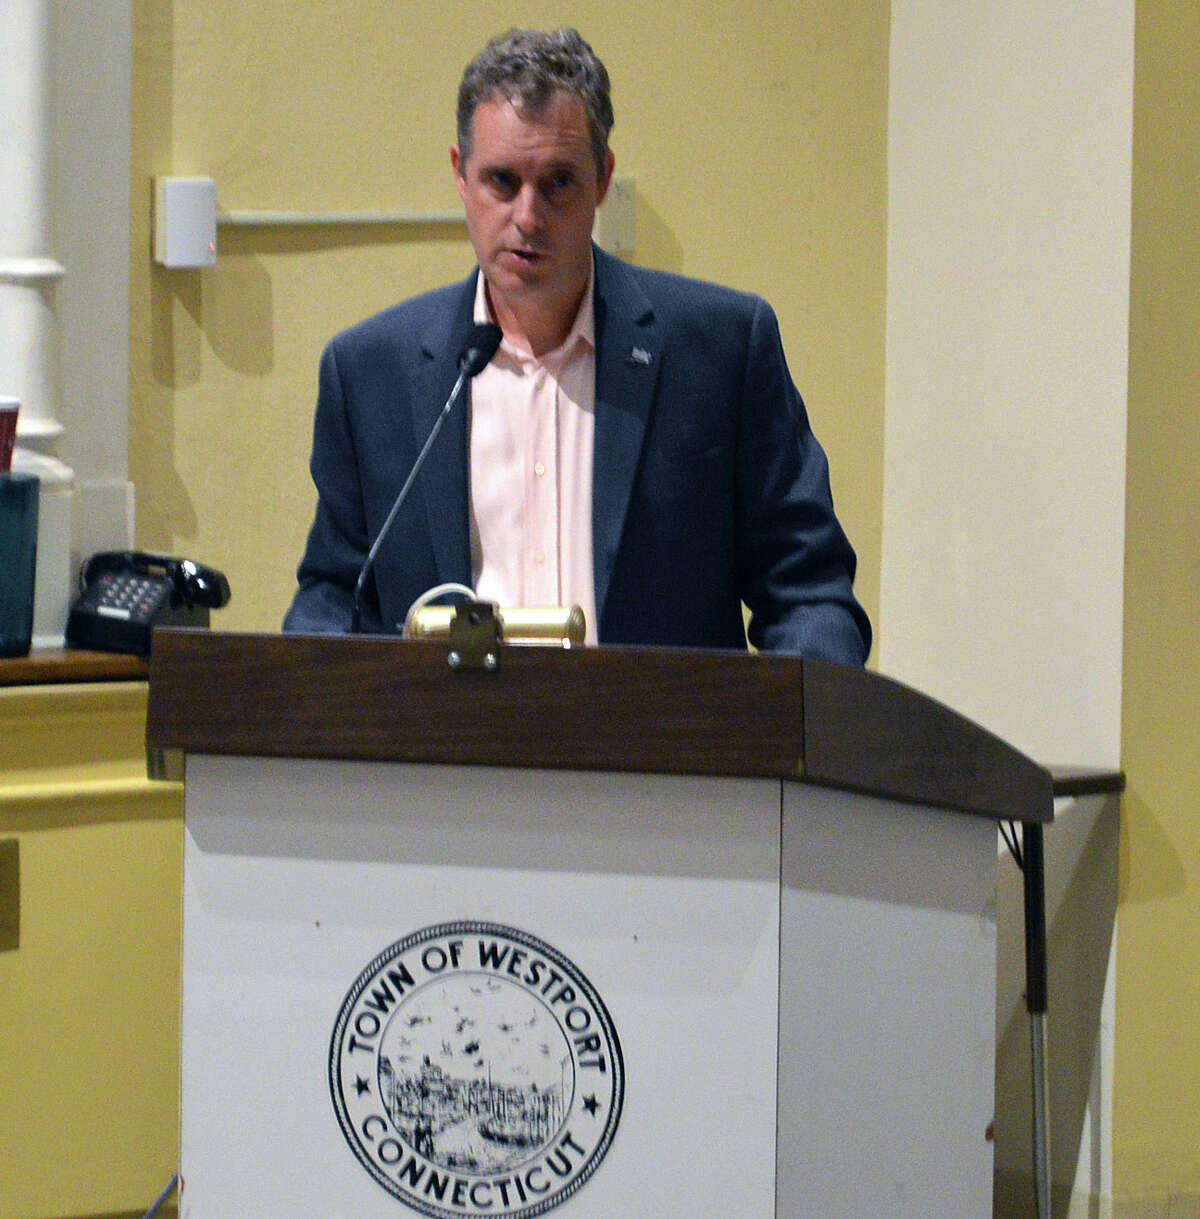 Morley Boyd, addressing the Representative Town Meeting, has been outspoken about his view that there is a need for a committee to study designating the Saugatuck swing bridge a local historical landmark.